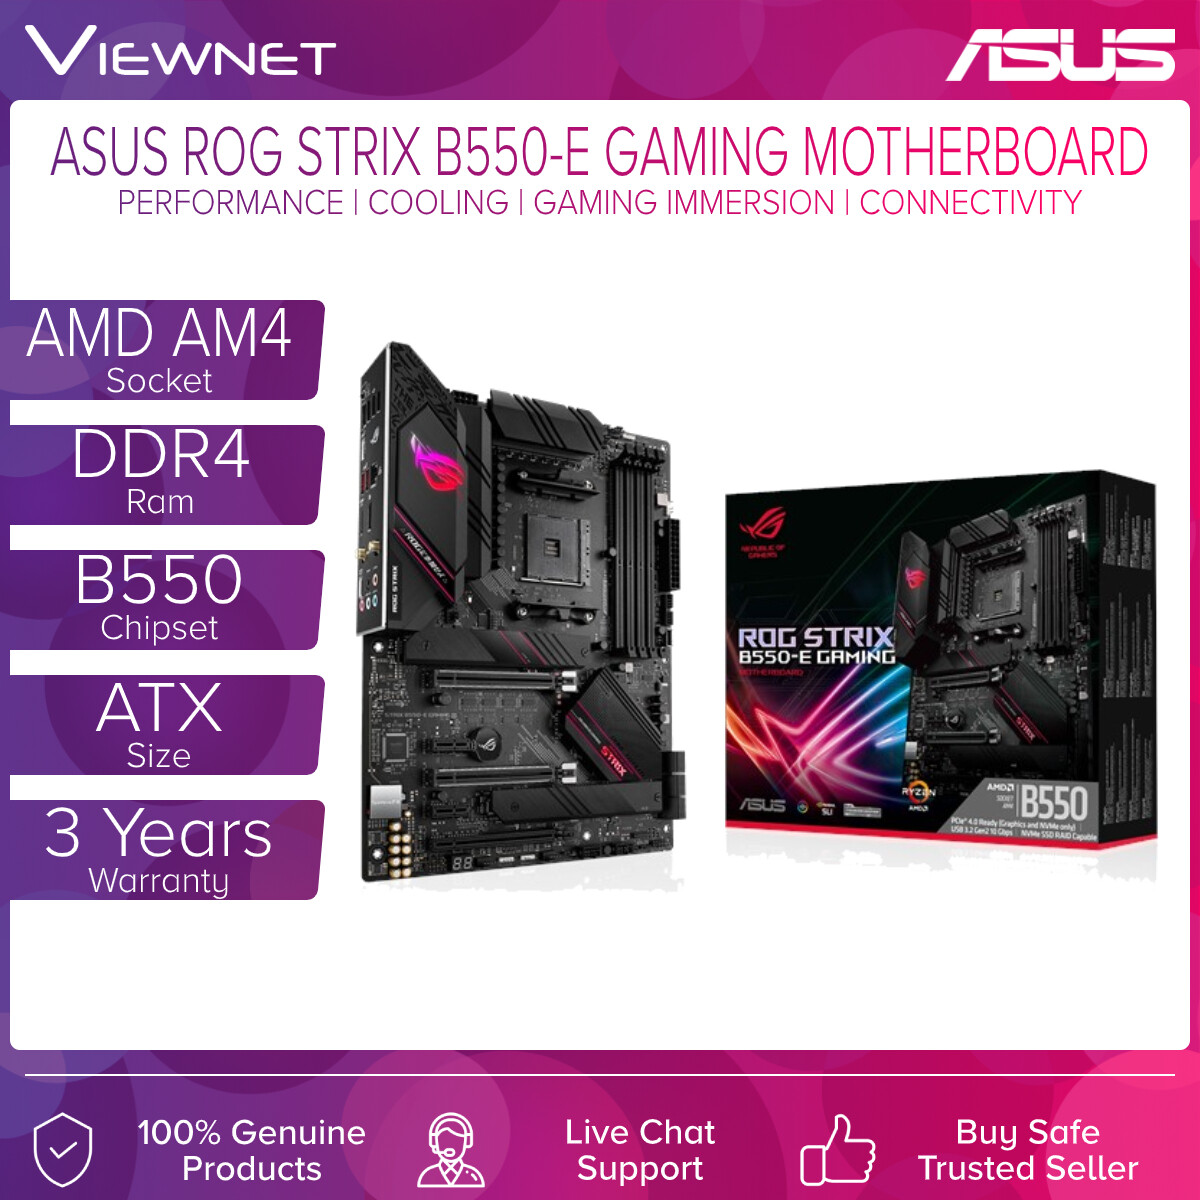 Asus ROG Strix B550 Gaming series motherboards offer a feature-set usually found in the higher-end ROG Strix X570 Gaming series, including the latest PCIe® 4.0.